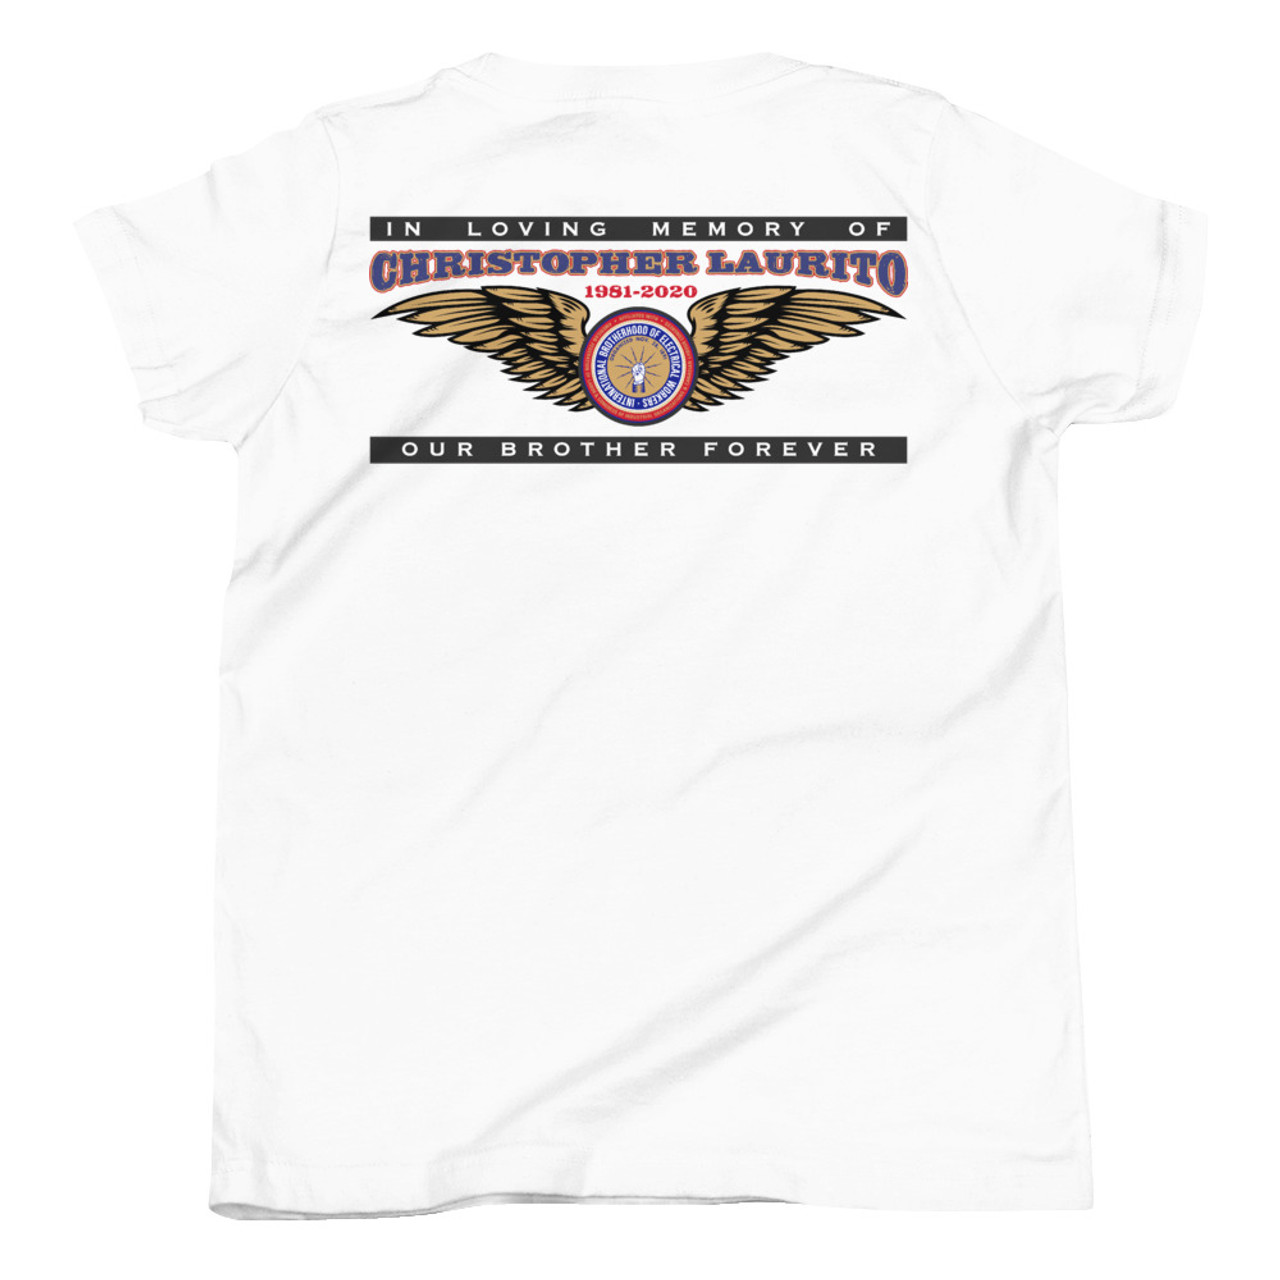 Christopher Laurito Memorial Shirt Youth